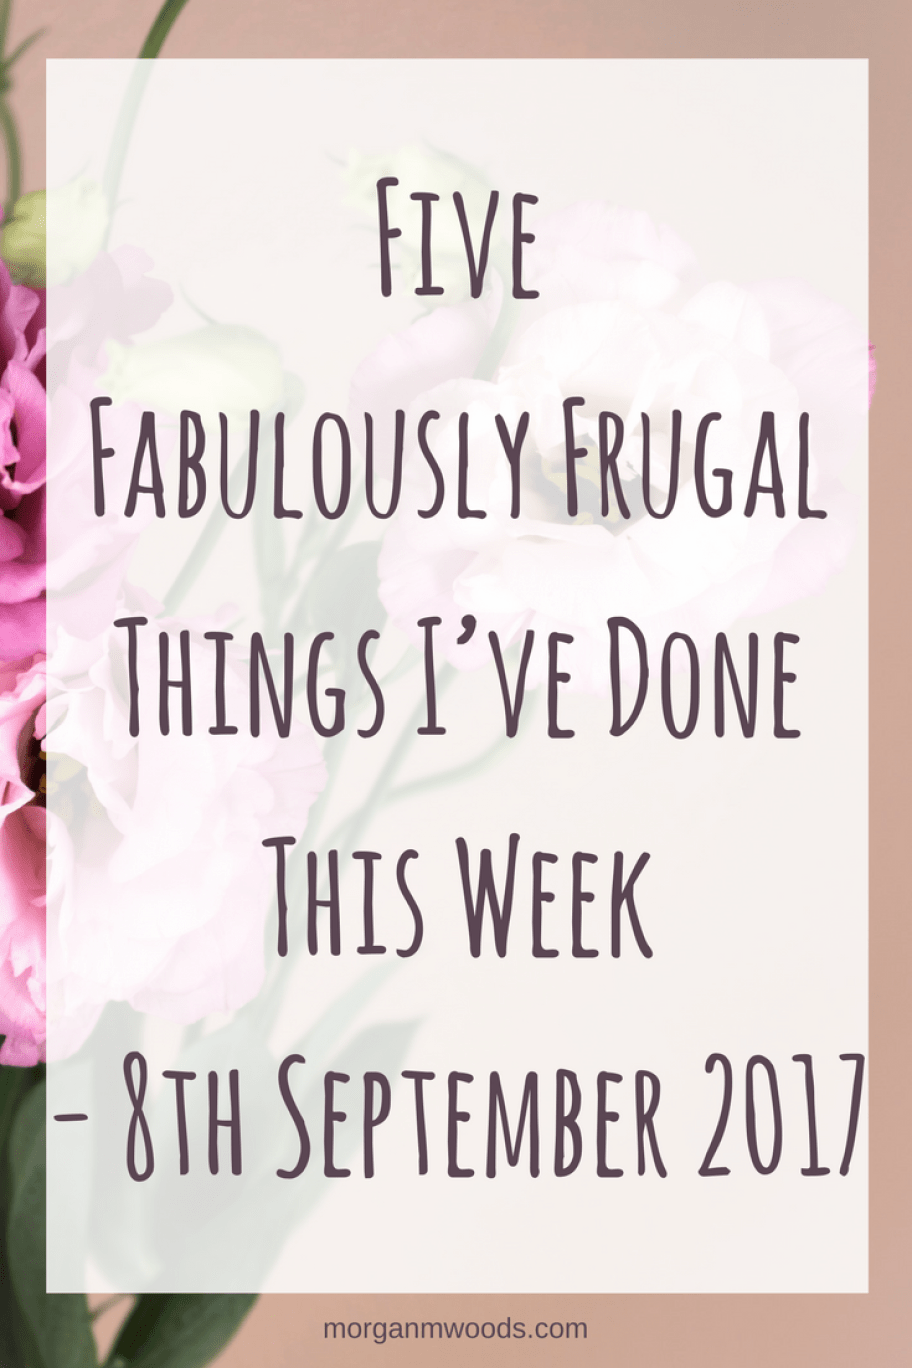 Five Fabulously Frugal Things I've Done This Week - 8th September 2017